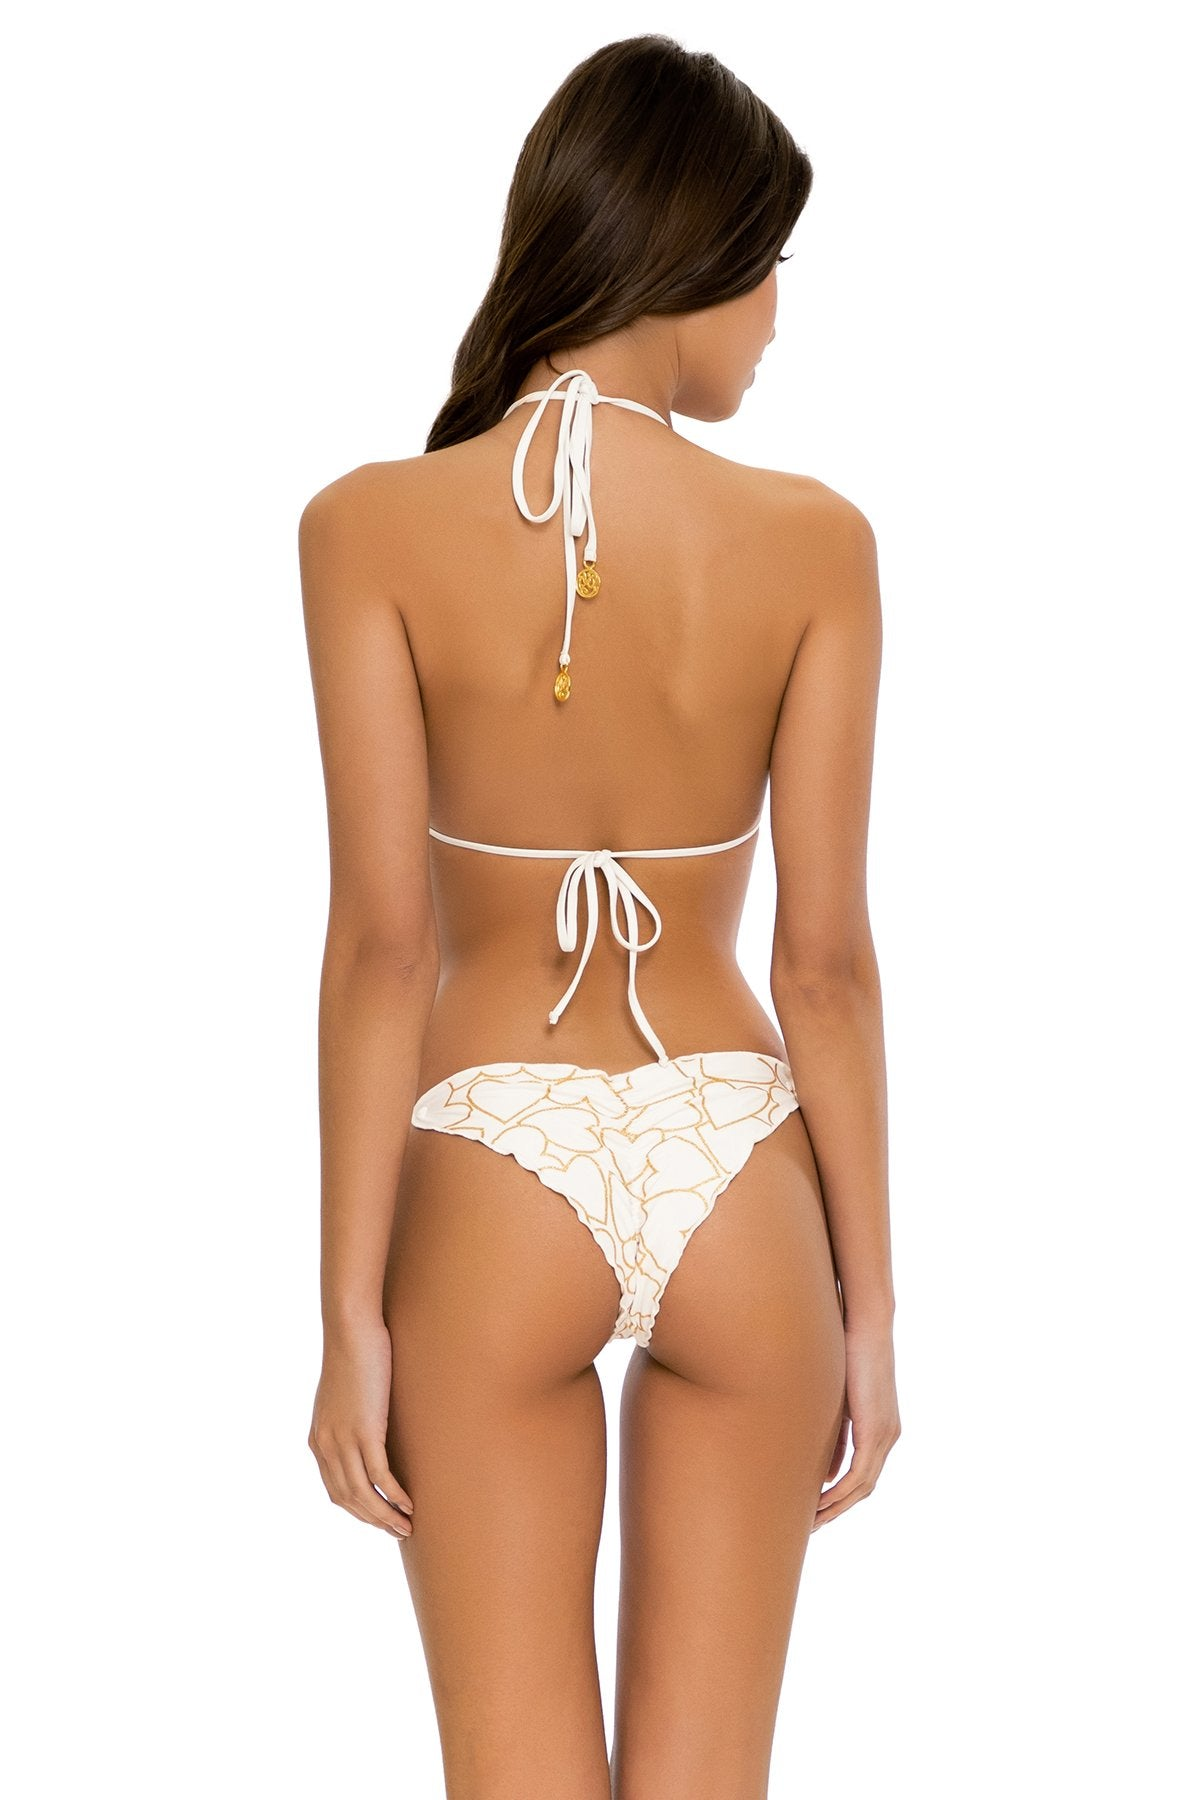 MY LOVE - Triangle Top & Wavey Ruched Back Tie Side Bottom • White